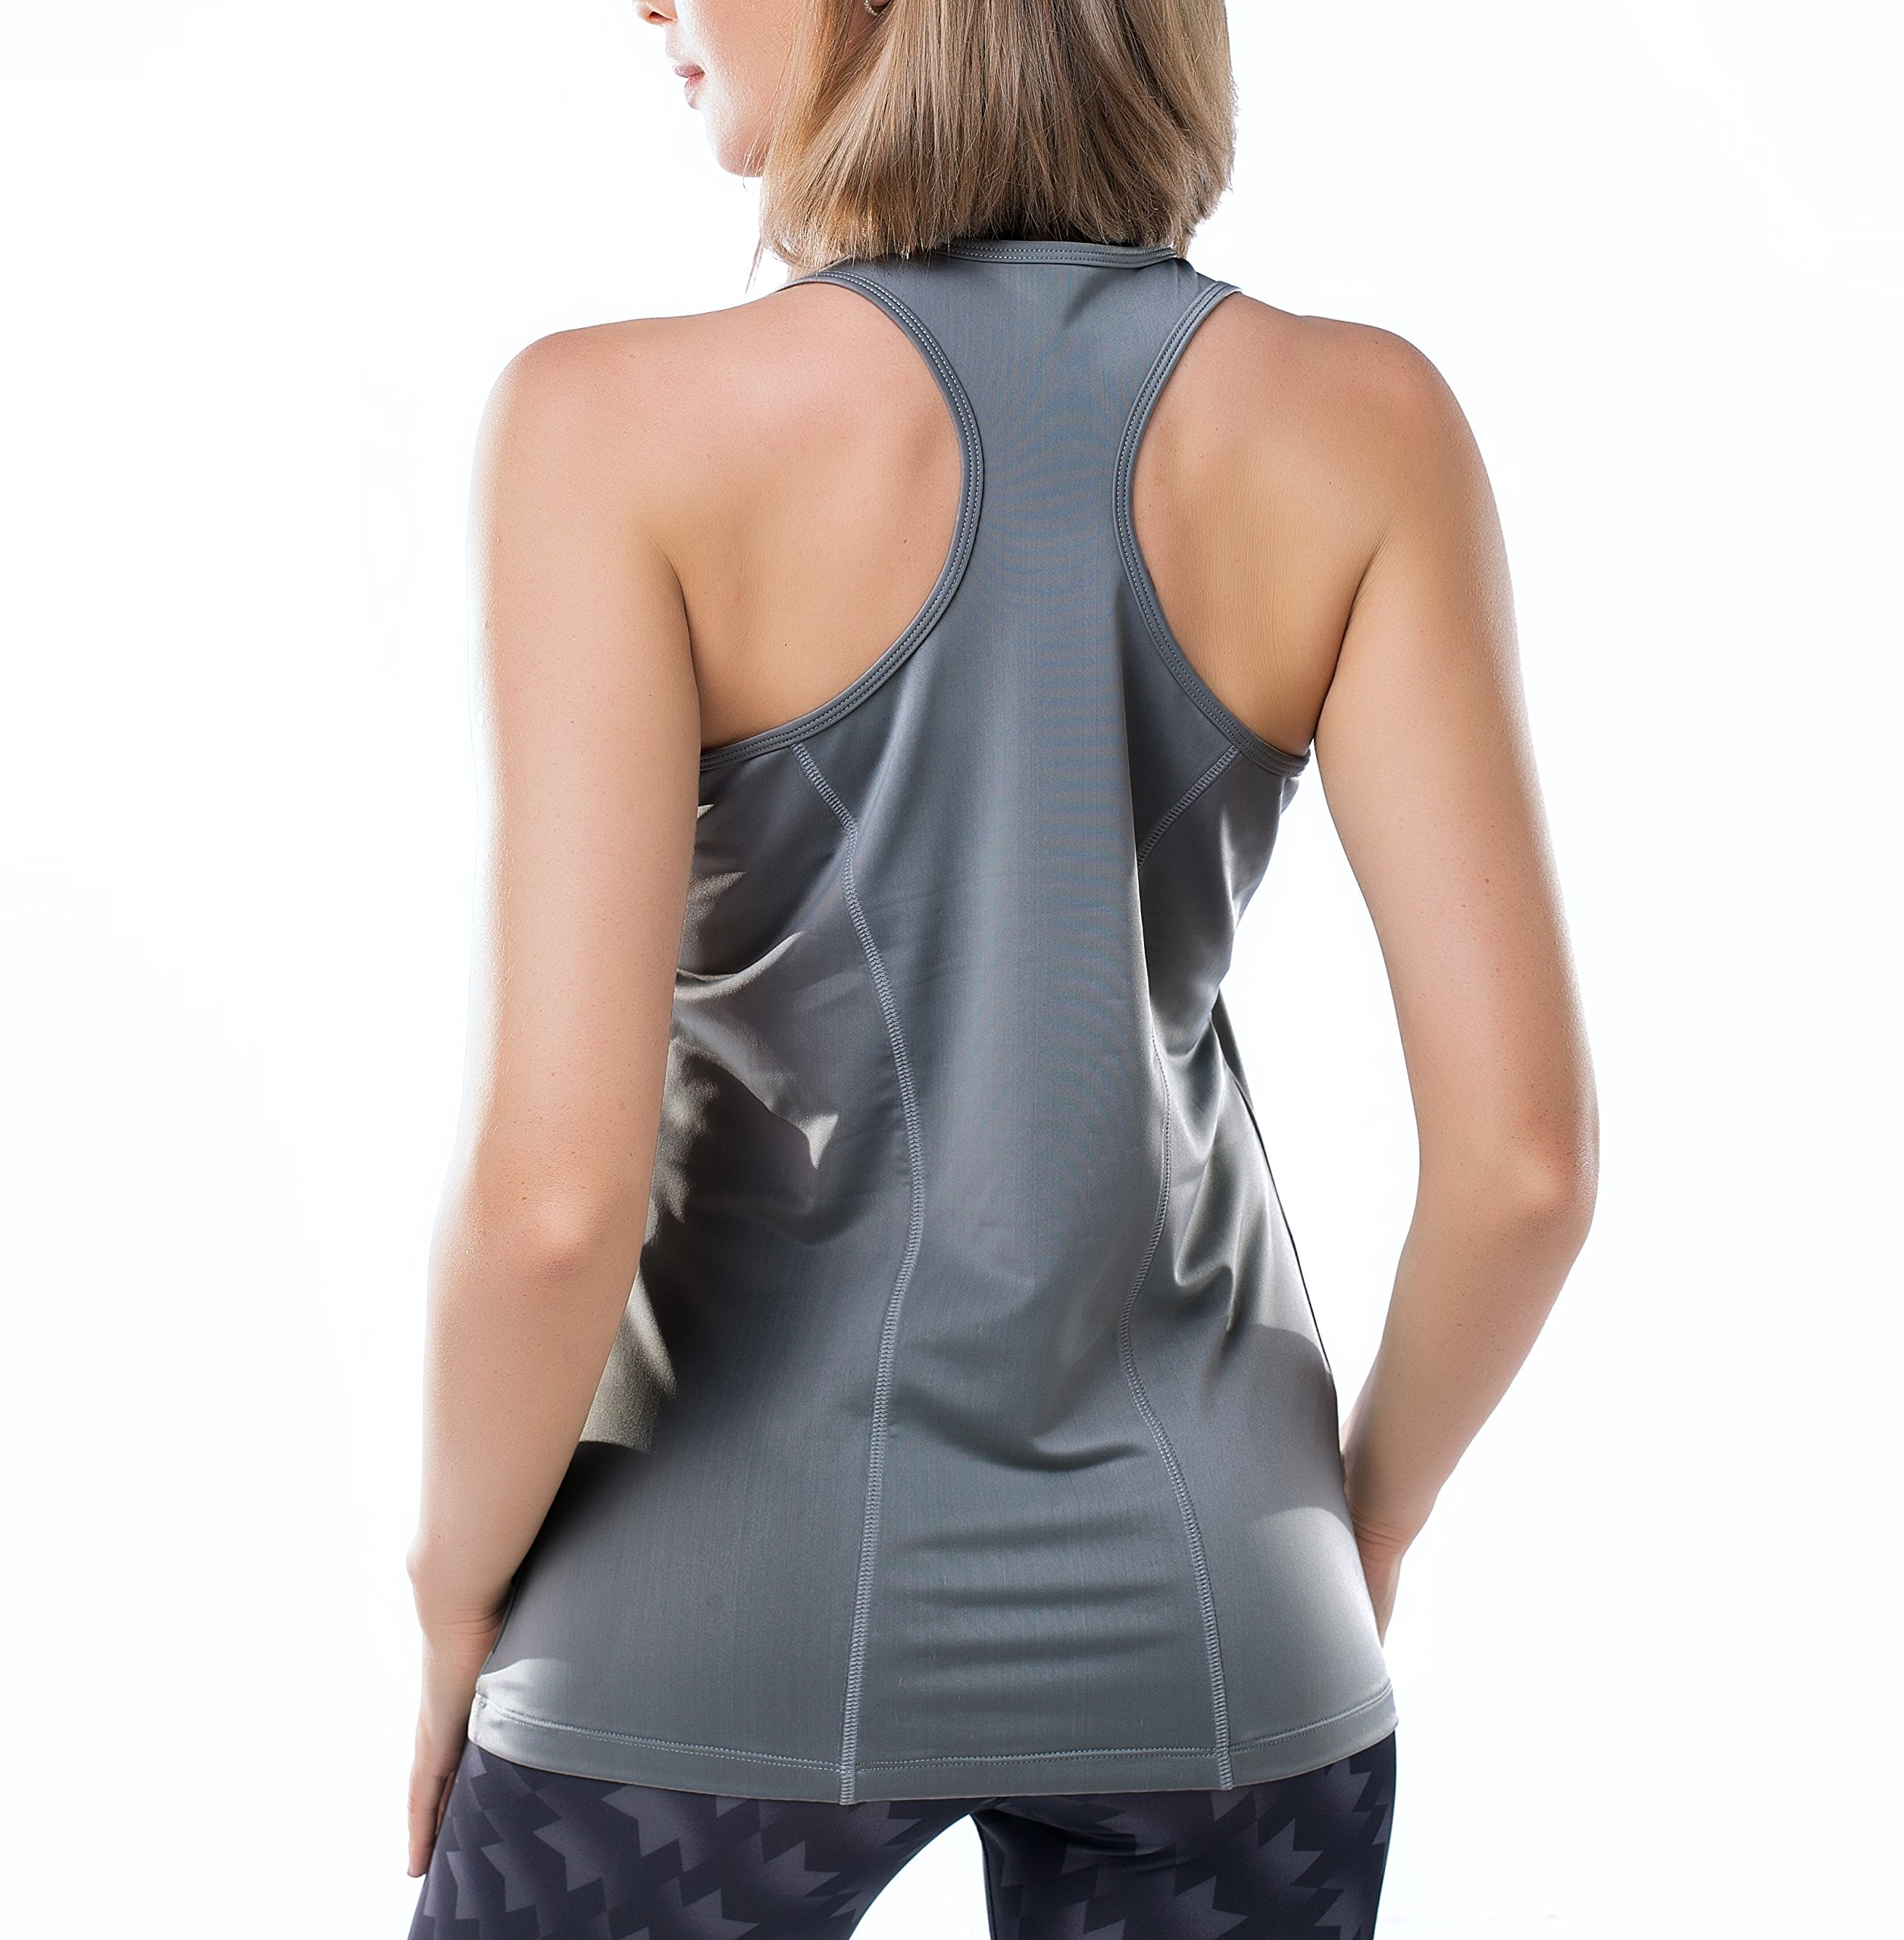 Tuerton Activewear Running Workout Clothes Exercise Yoga Racerback Tank Tops for Women(Grey,Small)